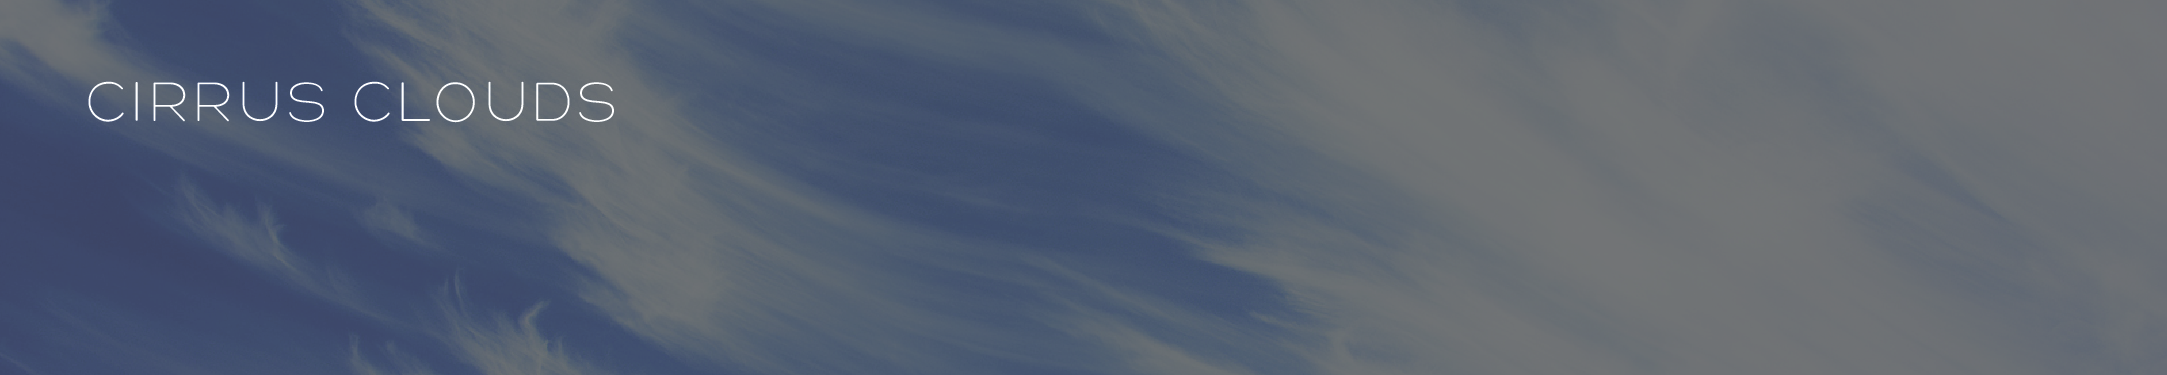 What role do clouds, and cirrus clouds in particular, play in climate change?